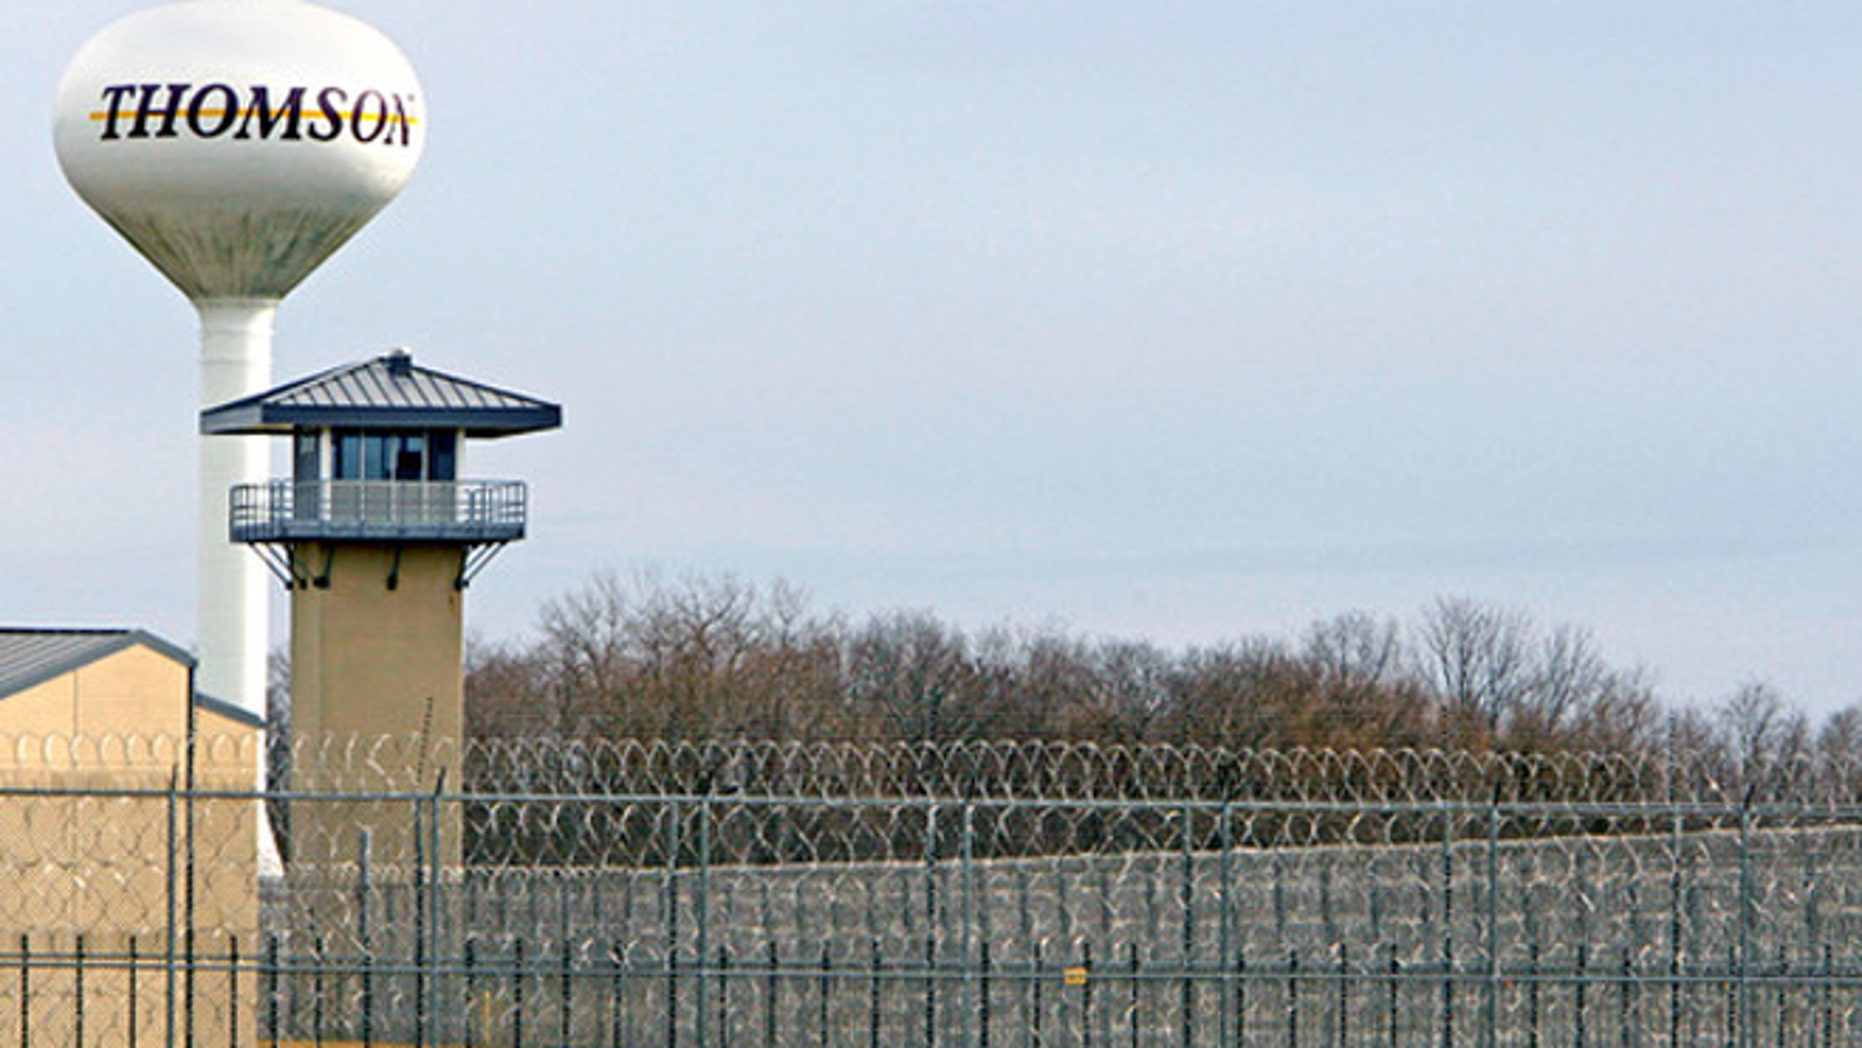 Shown here is the Thomson Correctional Center in Illinois.